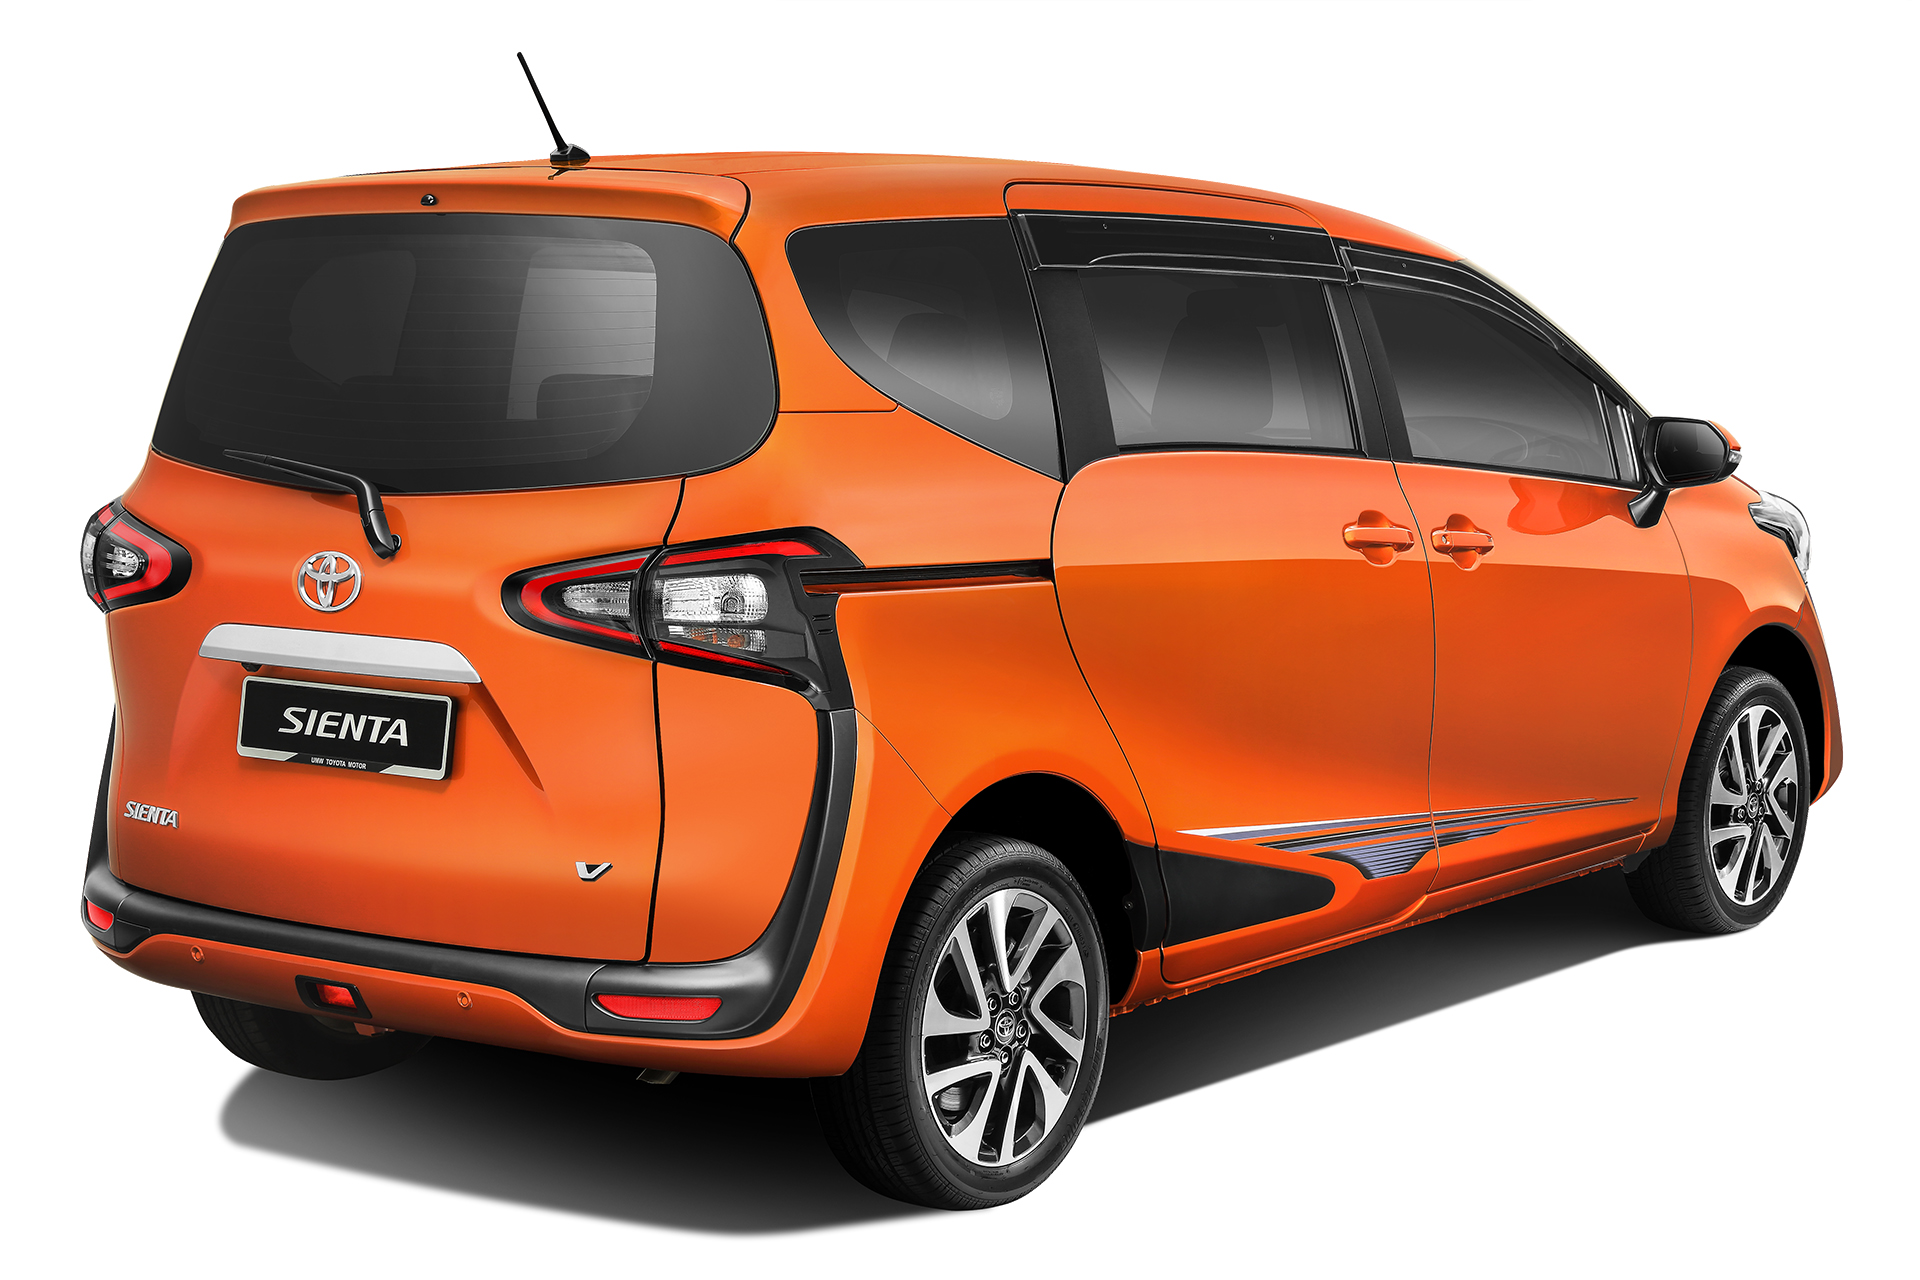 Catch The Toyota Sienta Mobile Truck Autoworld Com My